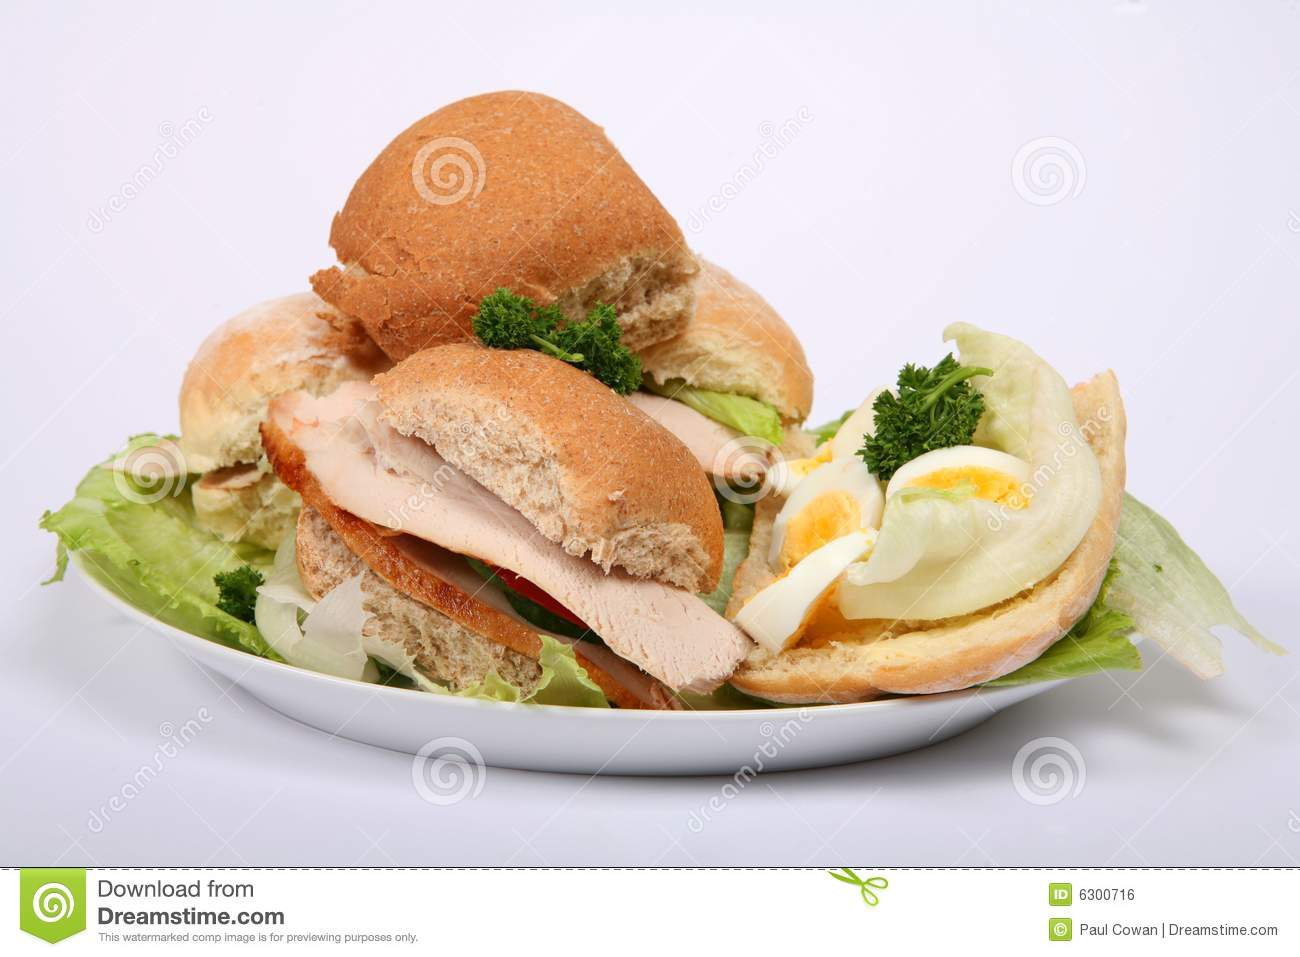 Pile of meat and salad sandwiches